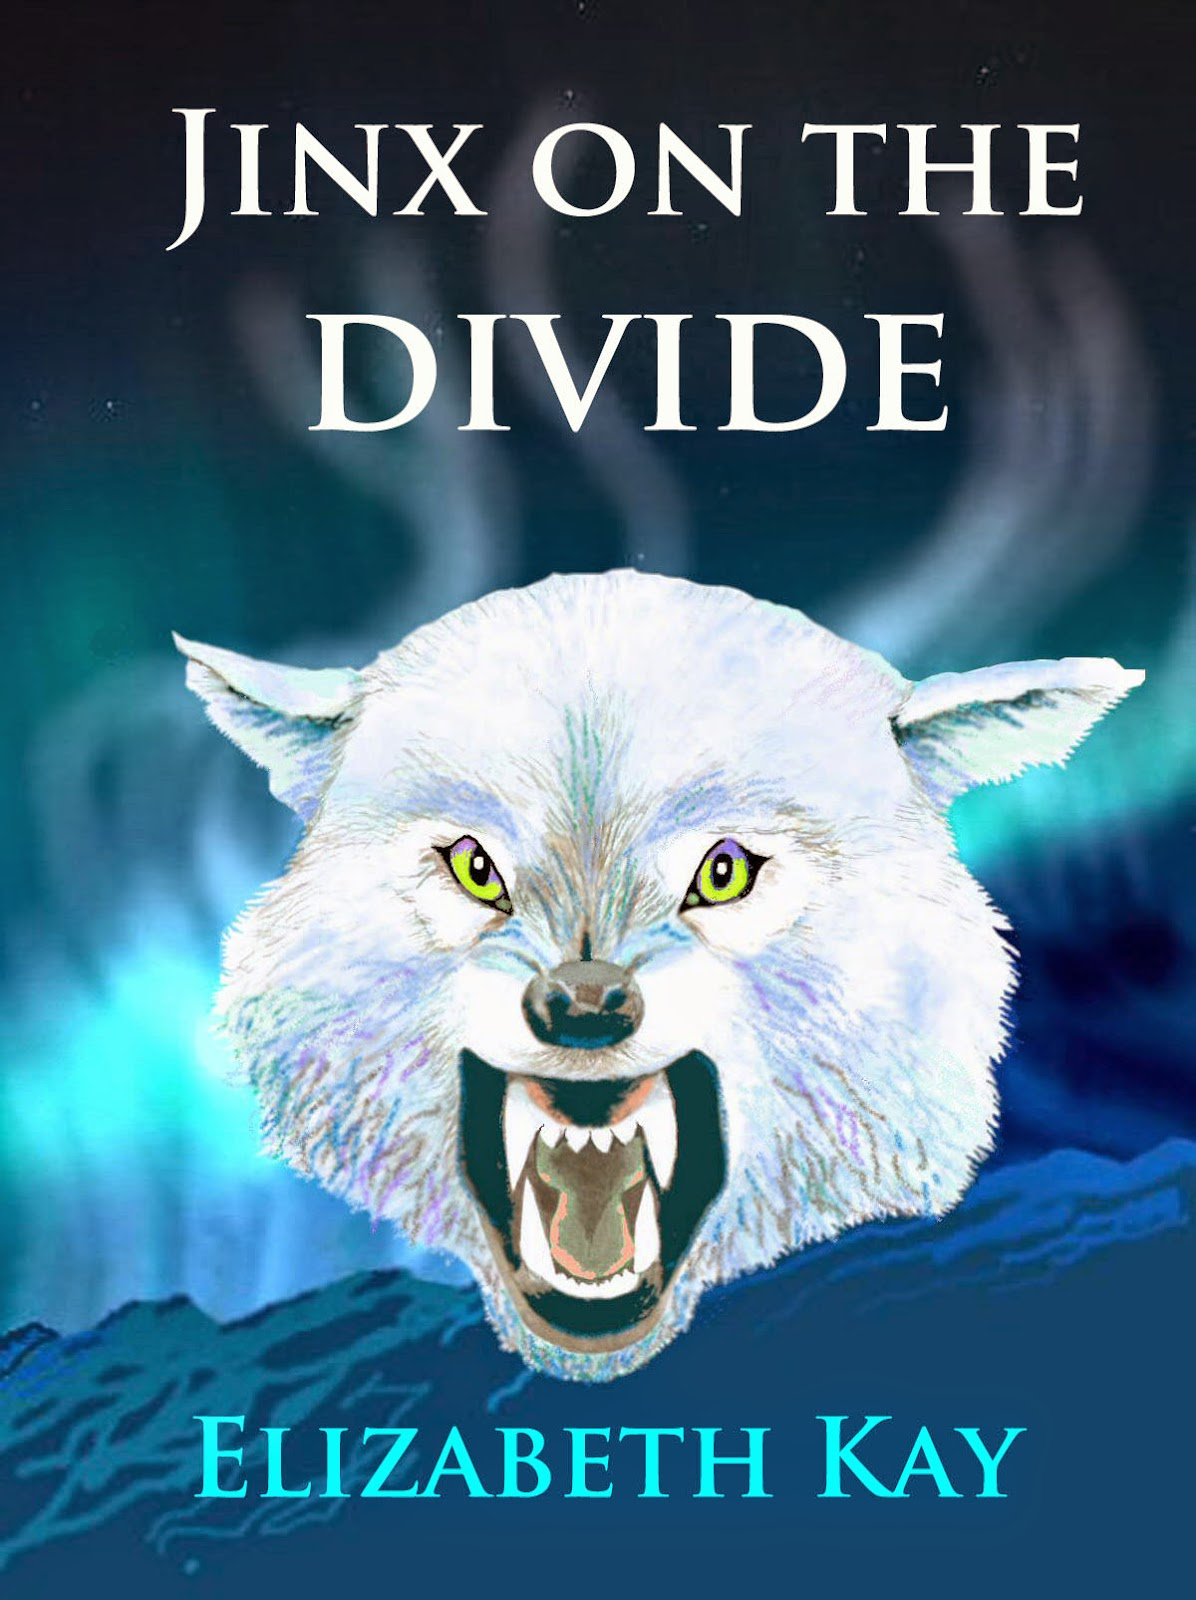 http://www.amazon.co.uk/Jinx-Divide-The-Trilogy-ebook/dp/B00ANV9D2M